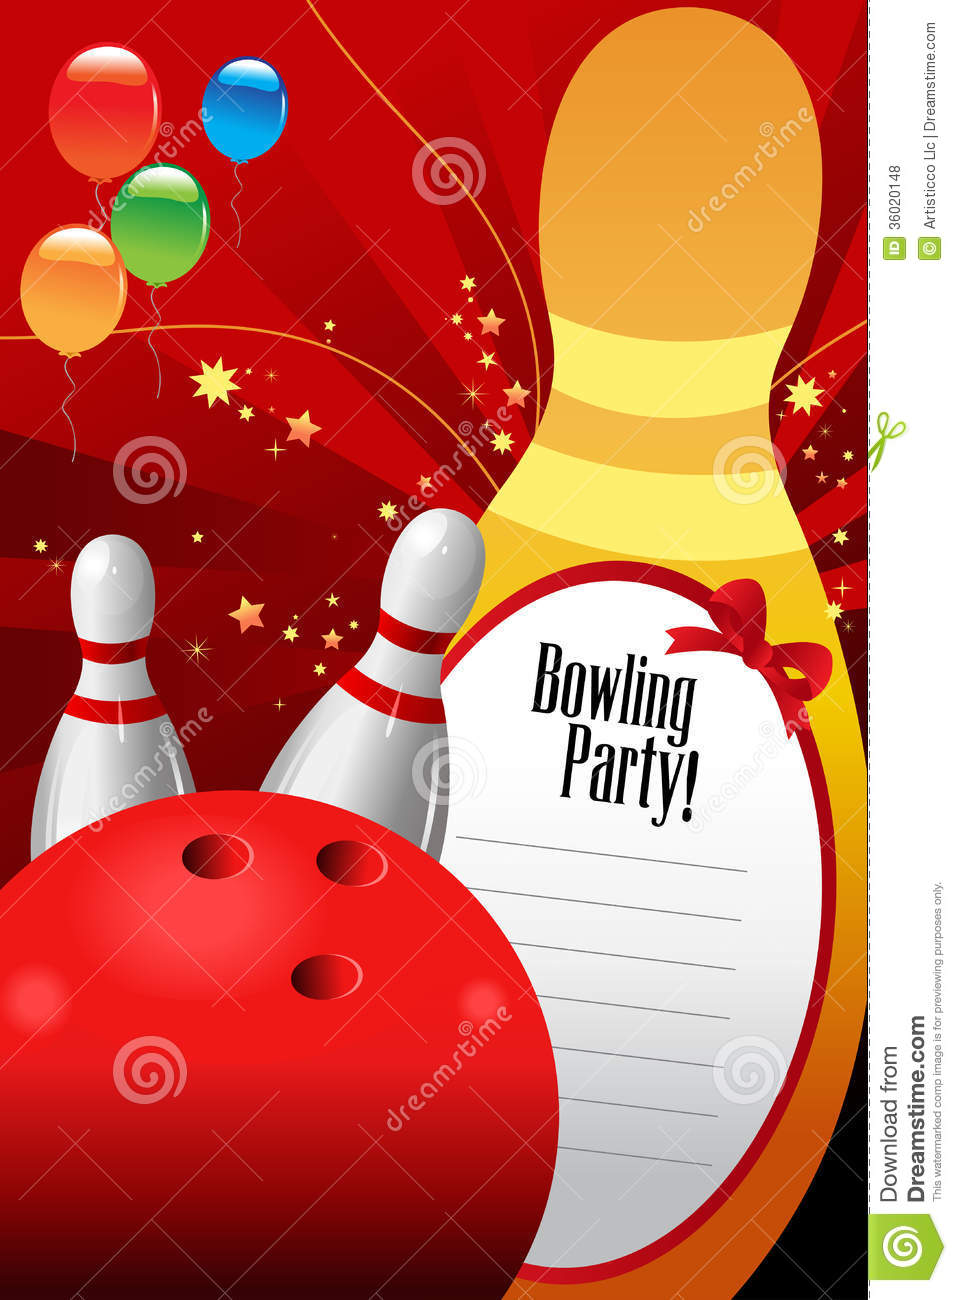 Bowling Birthday Party Invitations Free Templates Mickey Mouse - Bowling birthday party invitations free templates